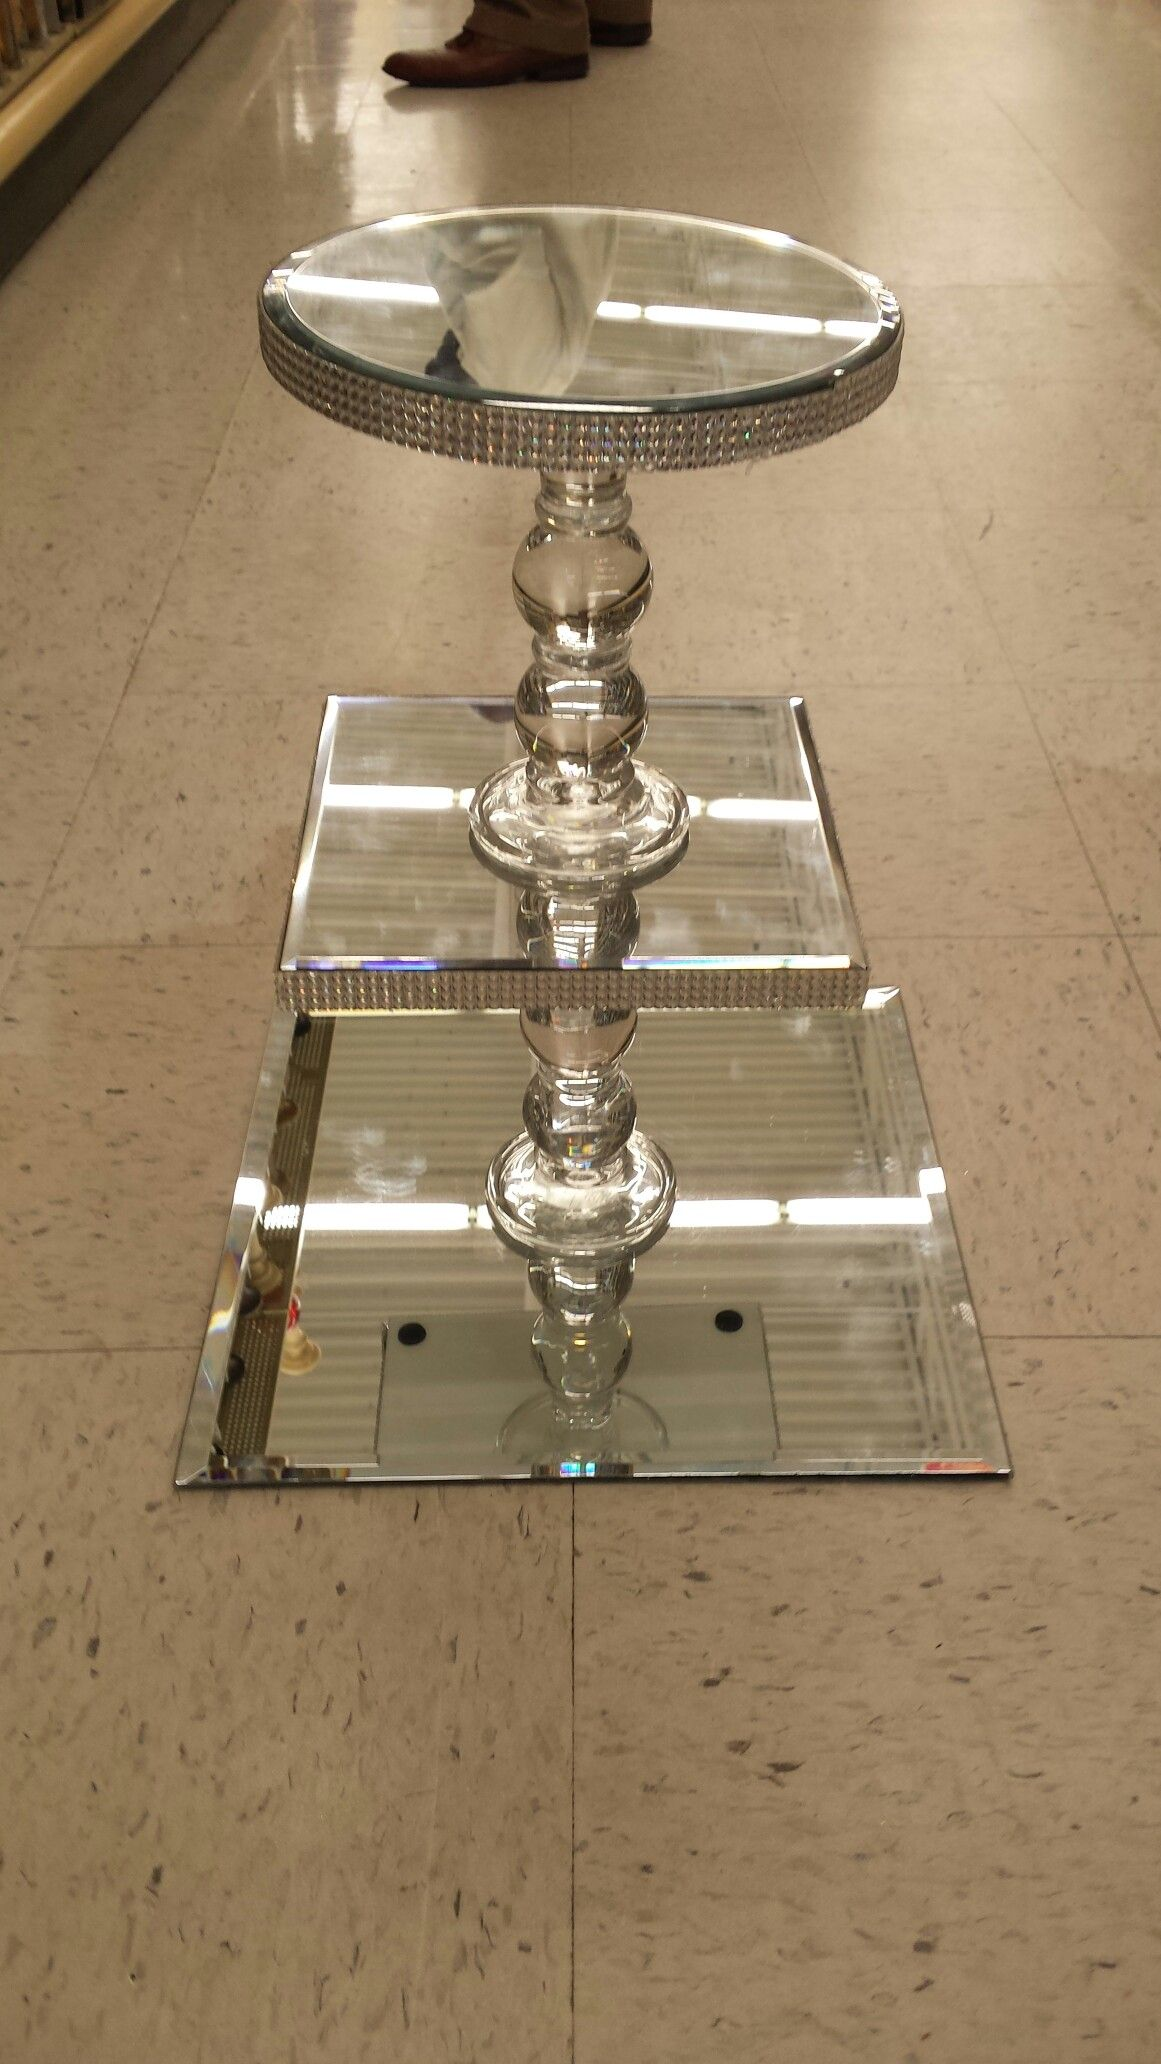 Cake stand will decorate with ribbons or flowers found